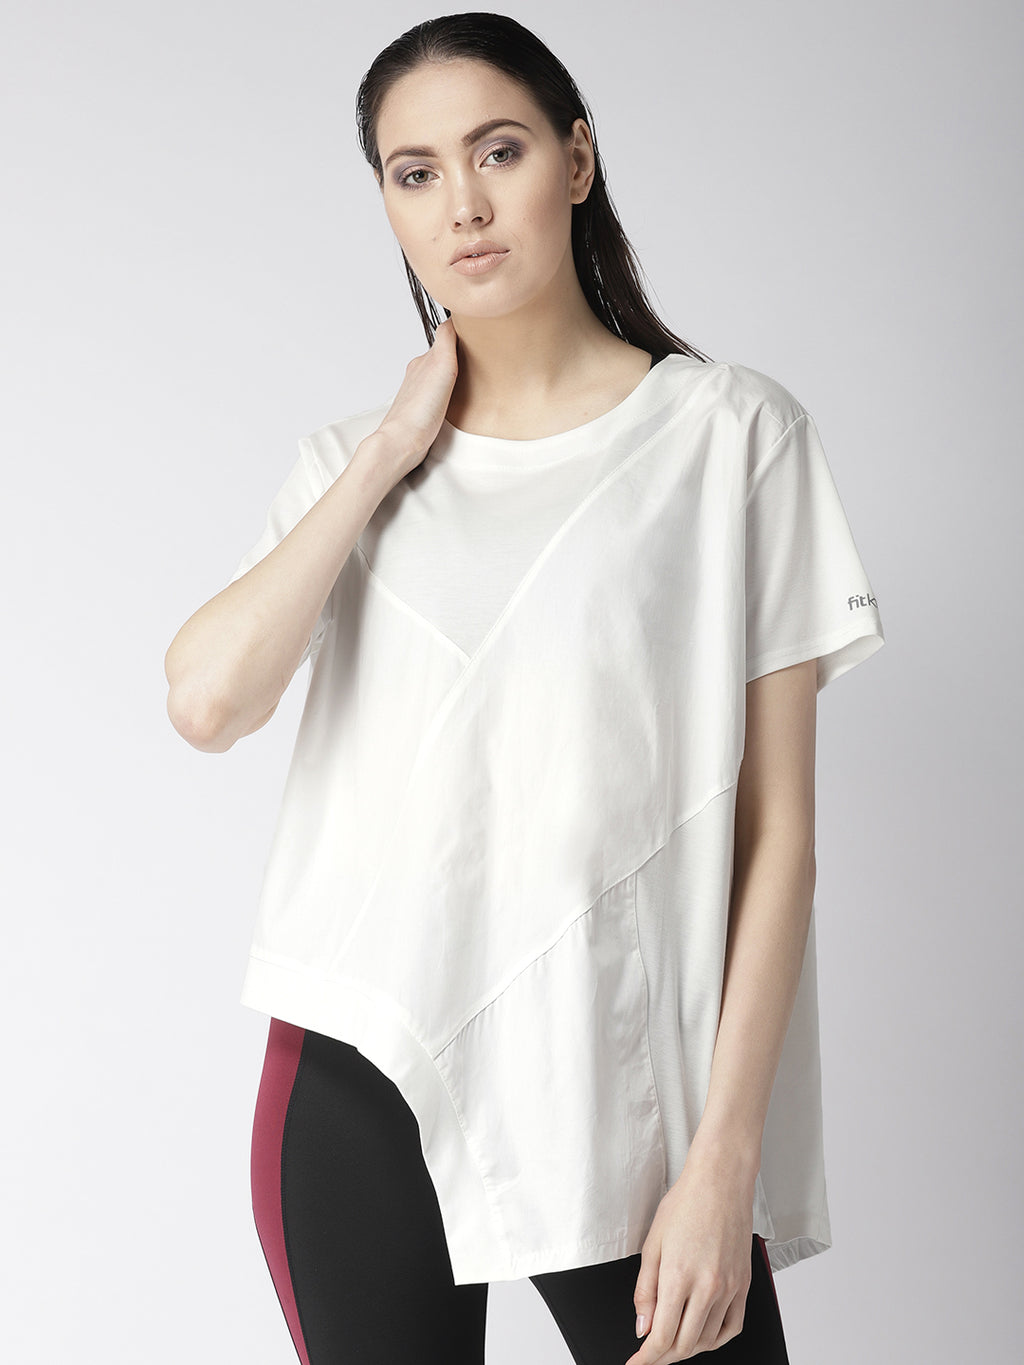 Fitkin Athleisure Asymmetric Lifestyle Top